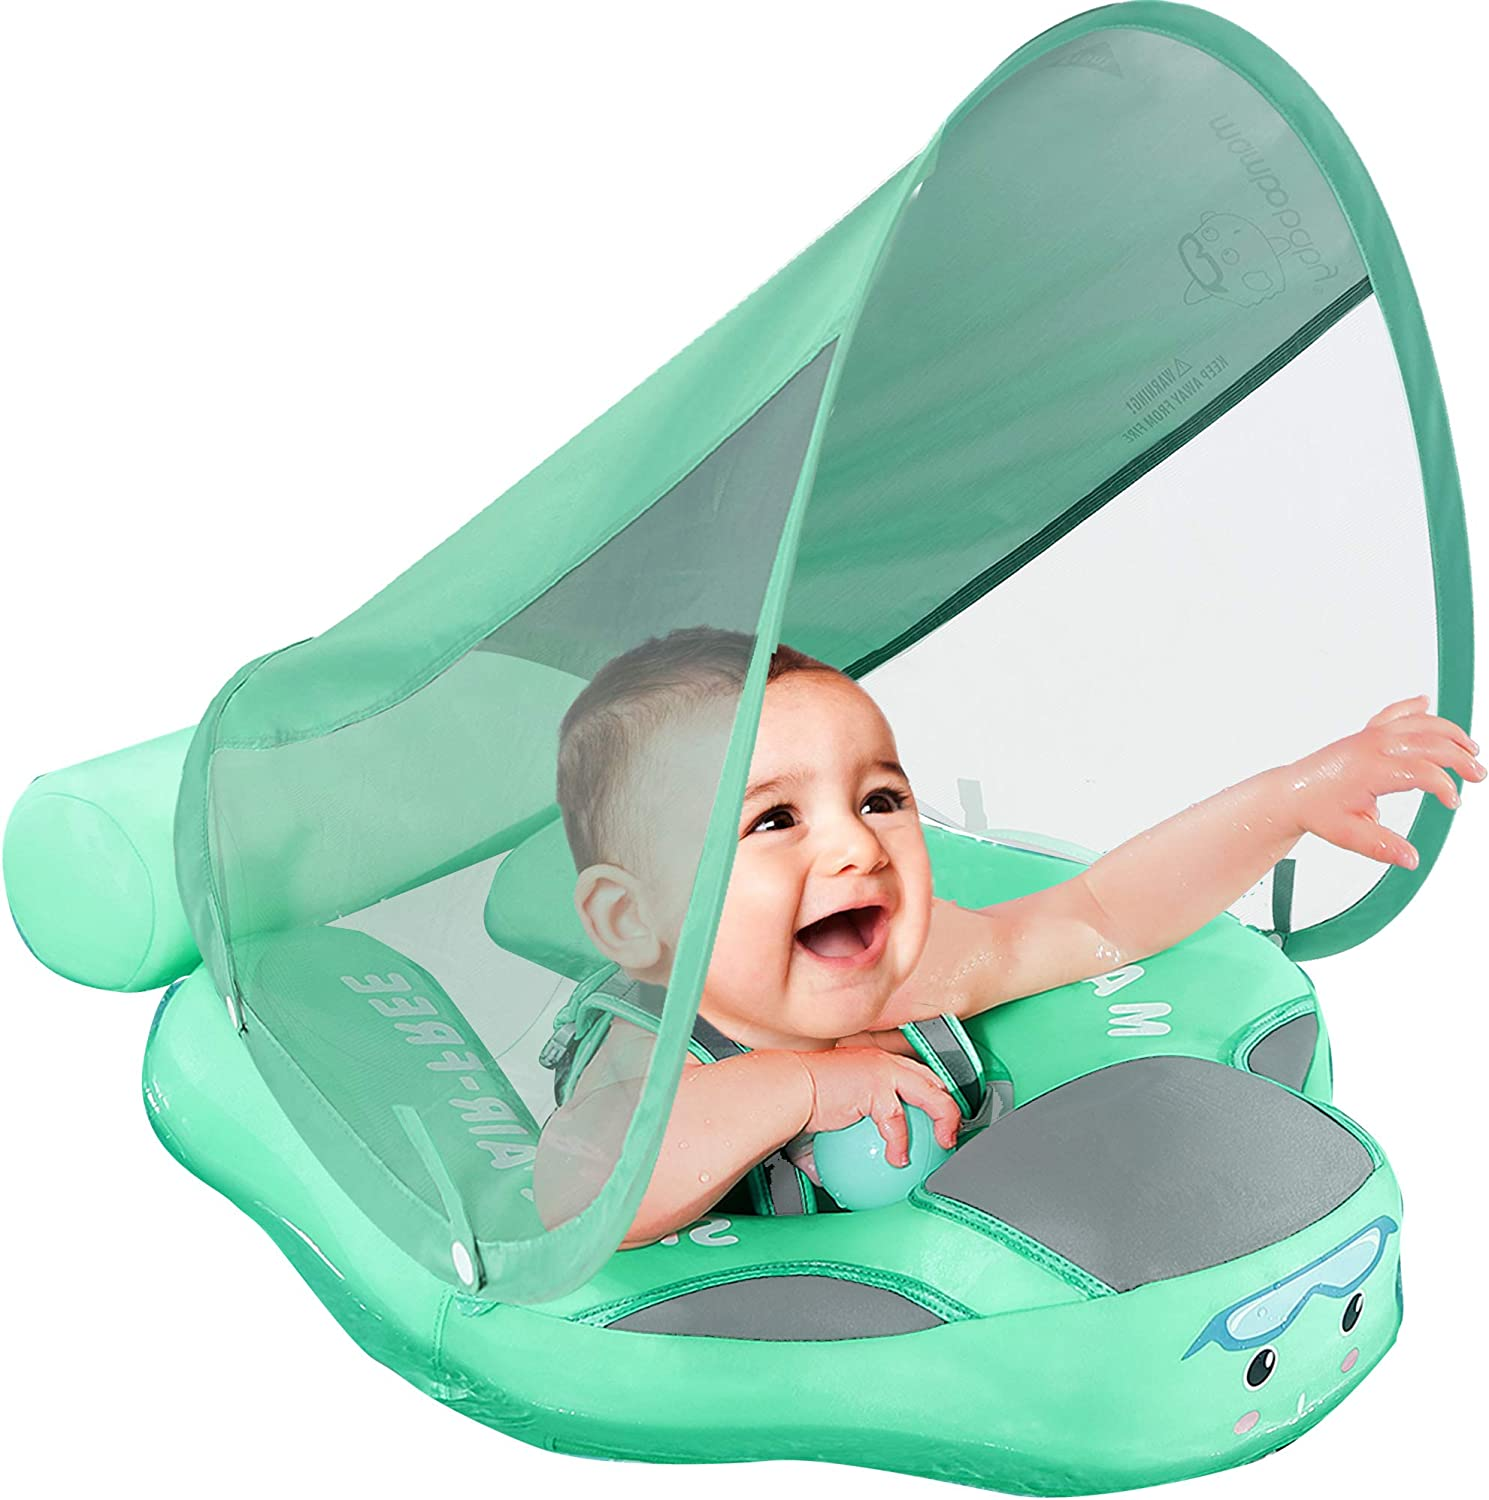 Sales for sale Preself 2020 Newest Max 77% OFF Baby Safety Float with Solid Stabilizer UP